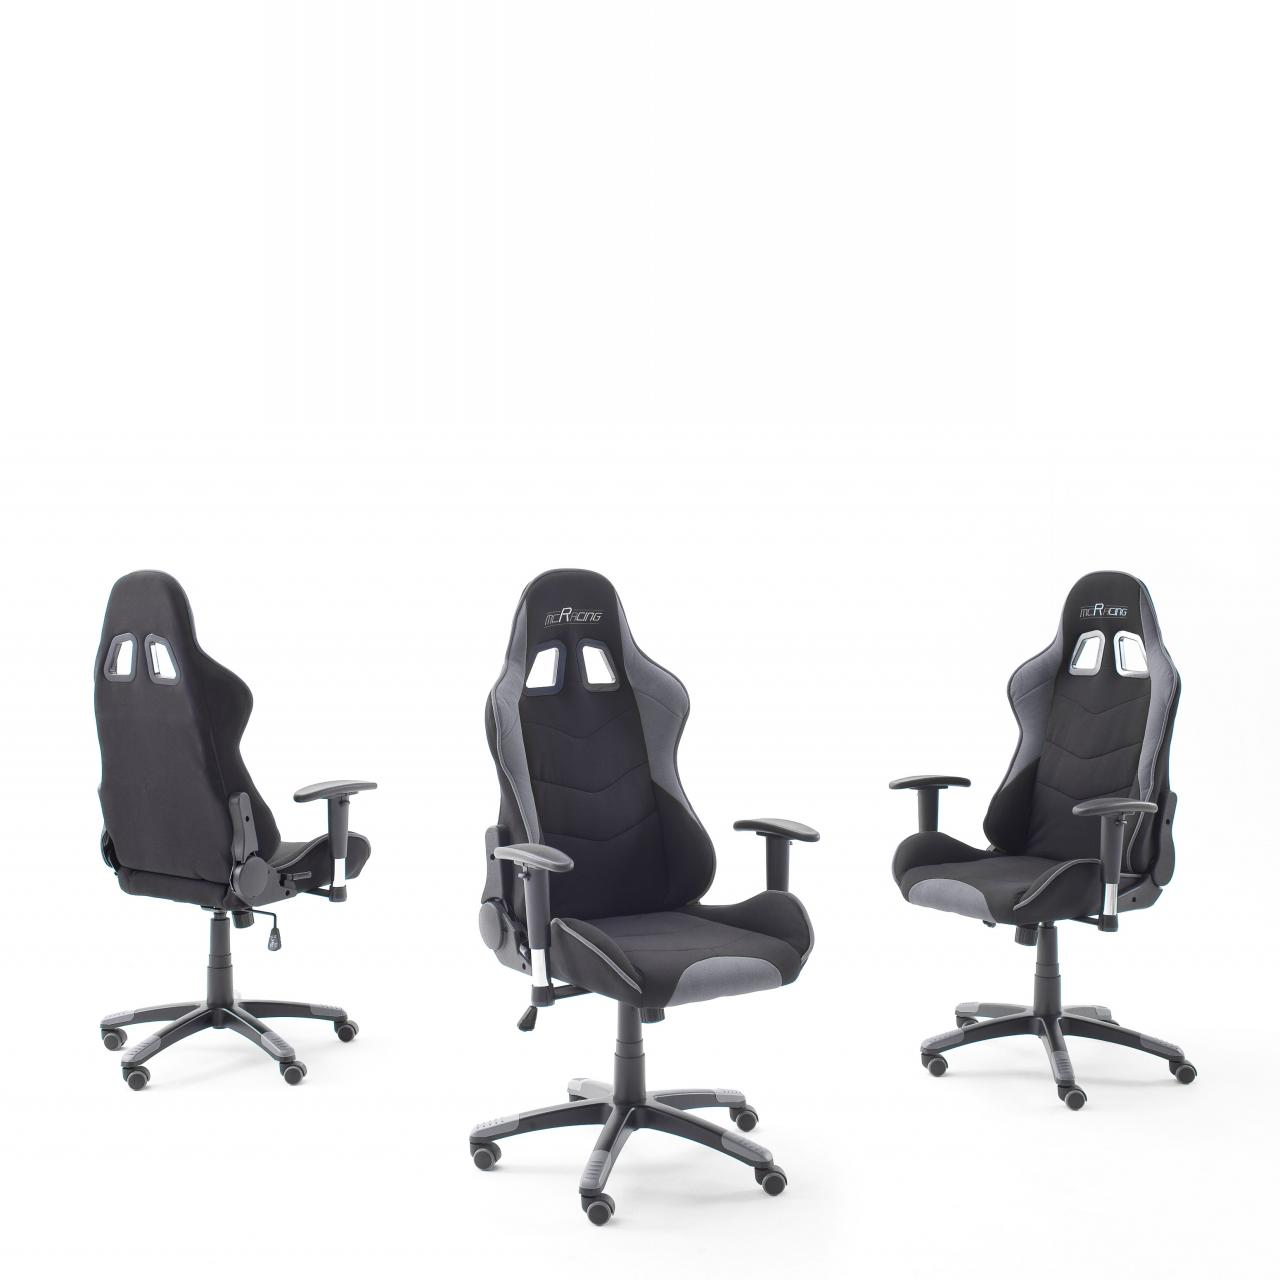 Chefsessel mcRacing 2 62492SG3